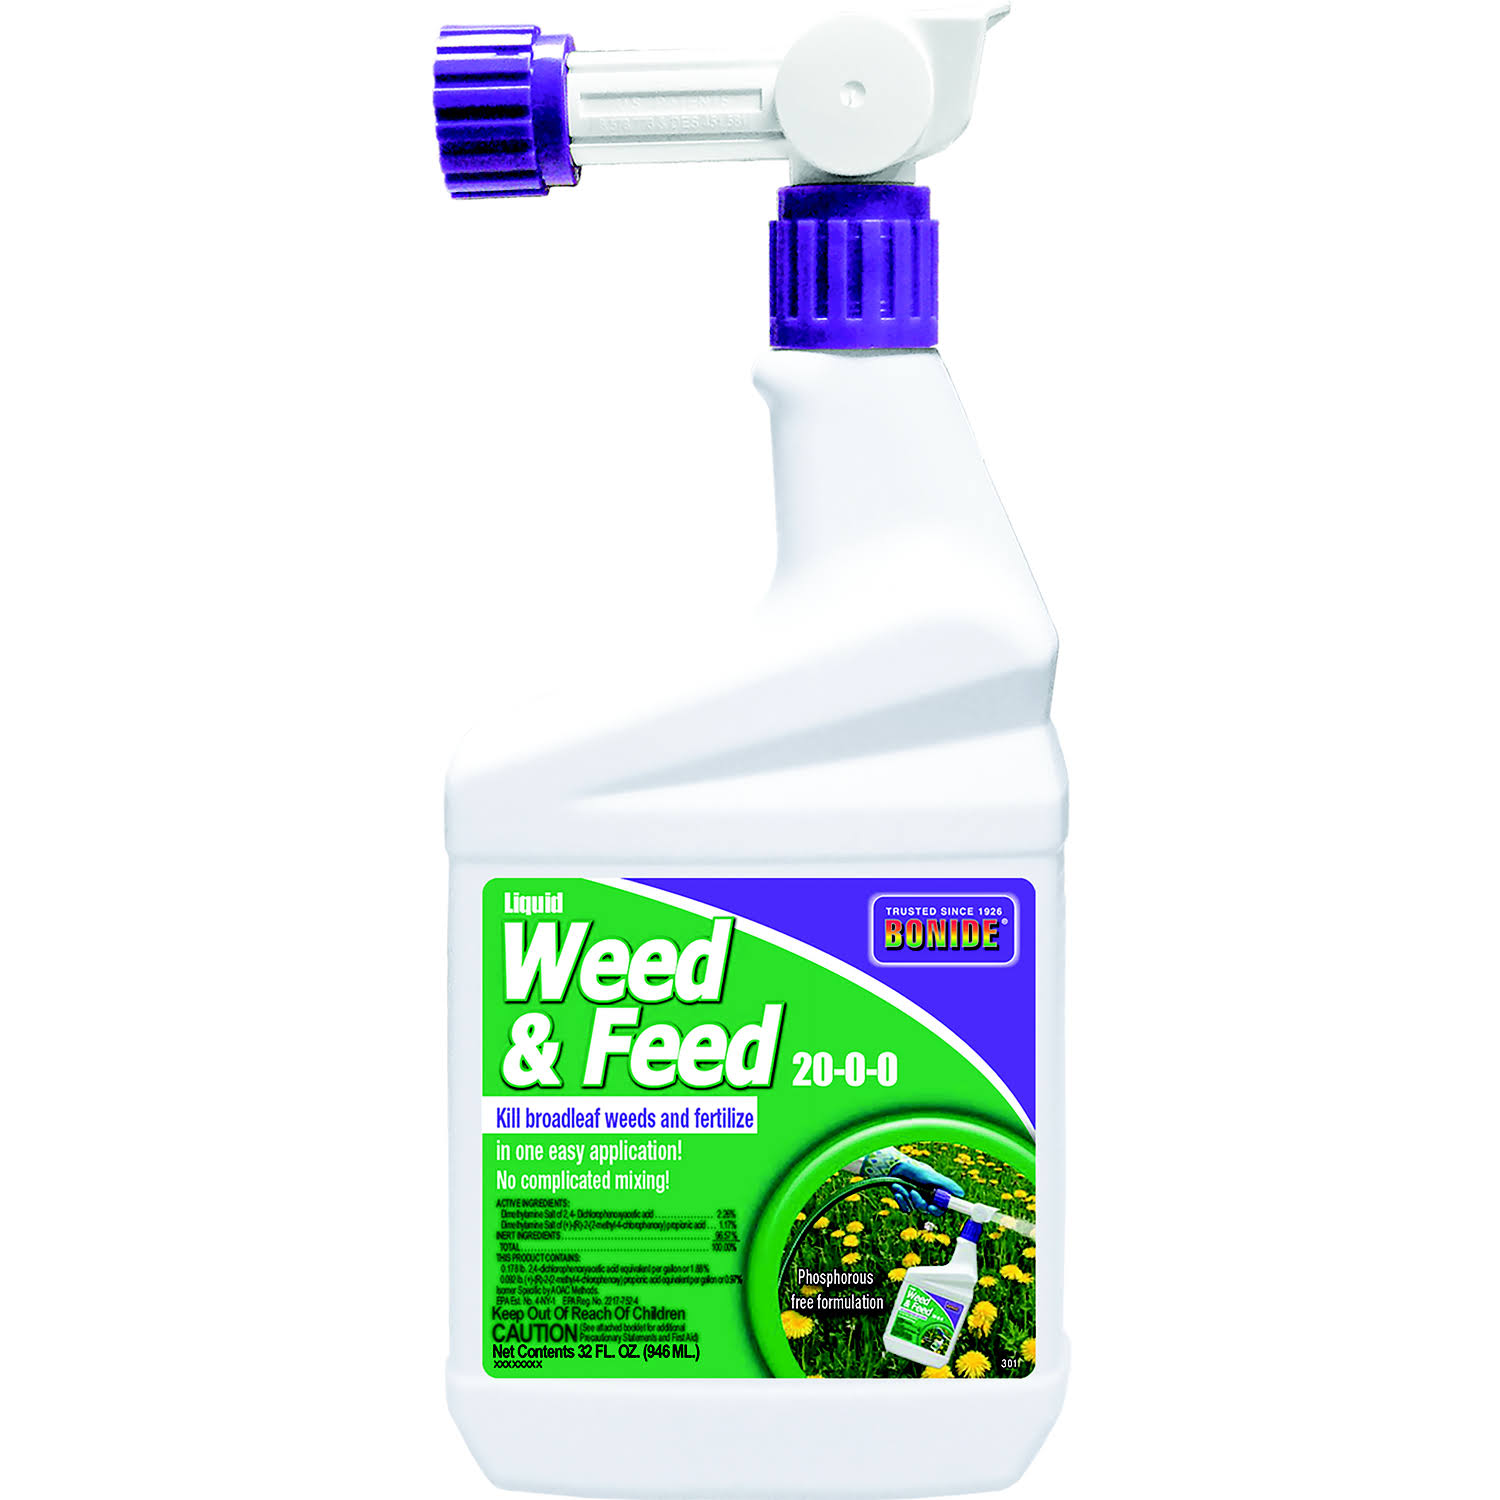 Bonide Chemical RTS Weed and Feed Control - 32oz